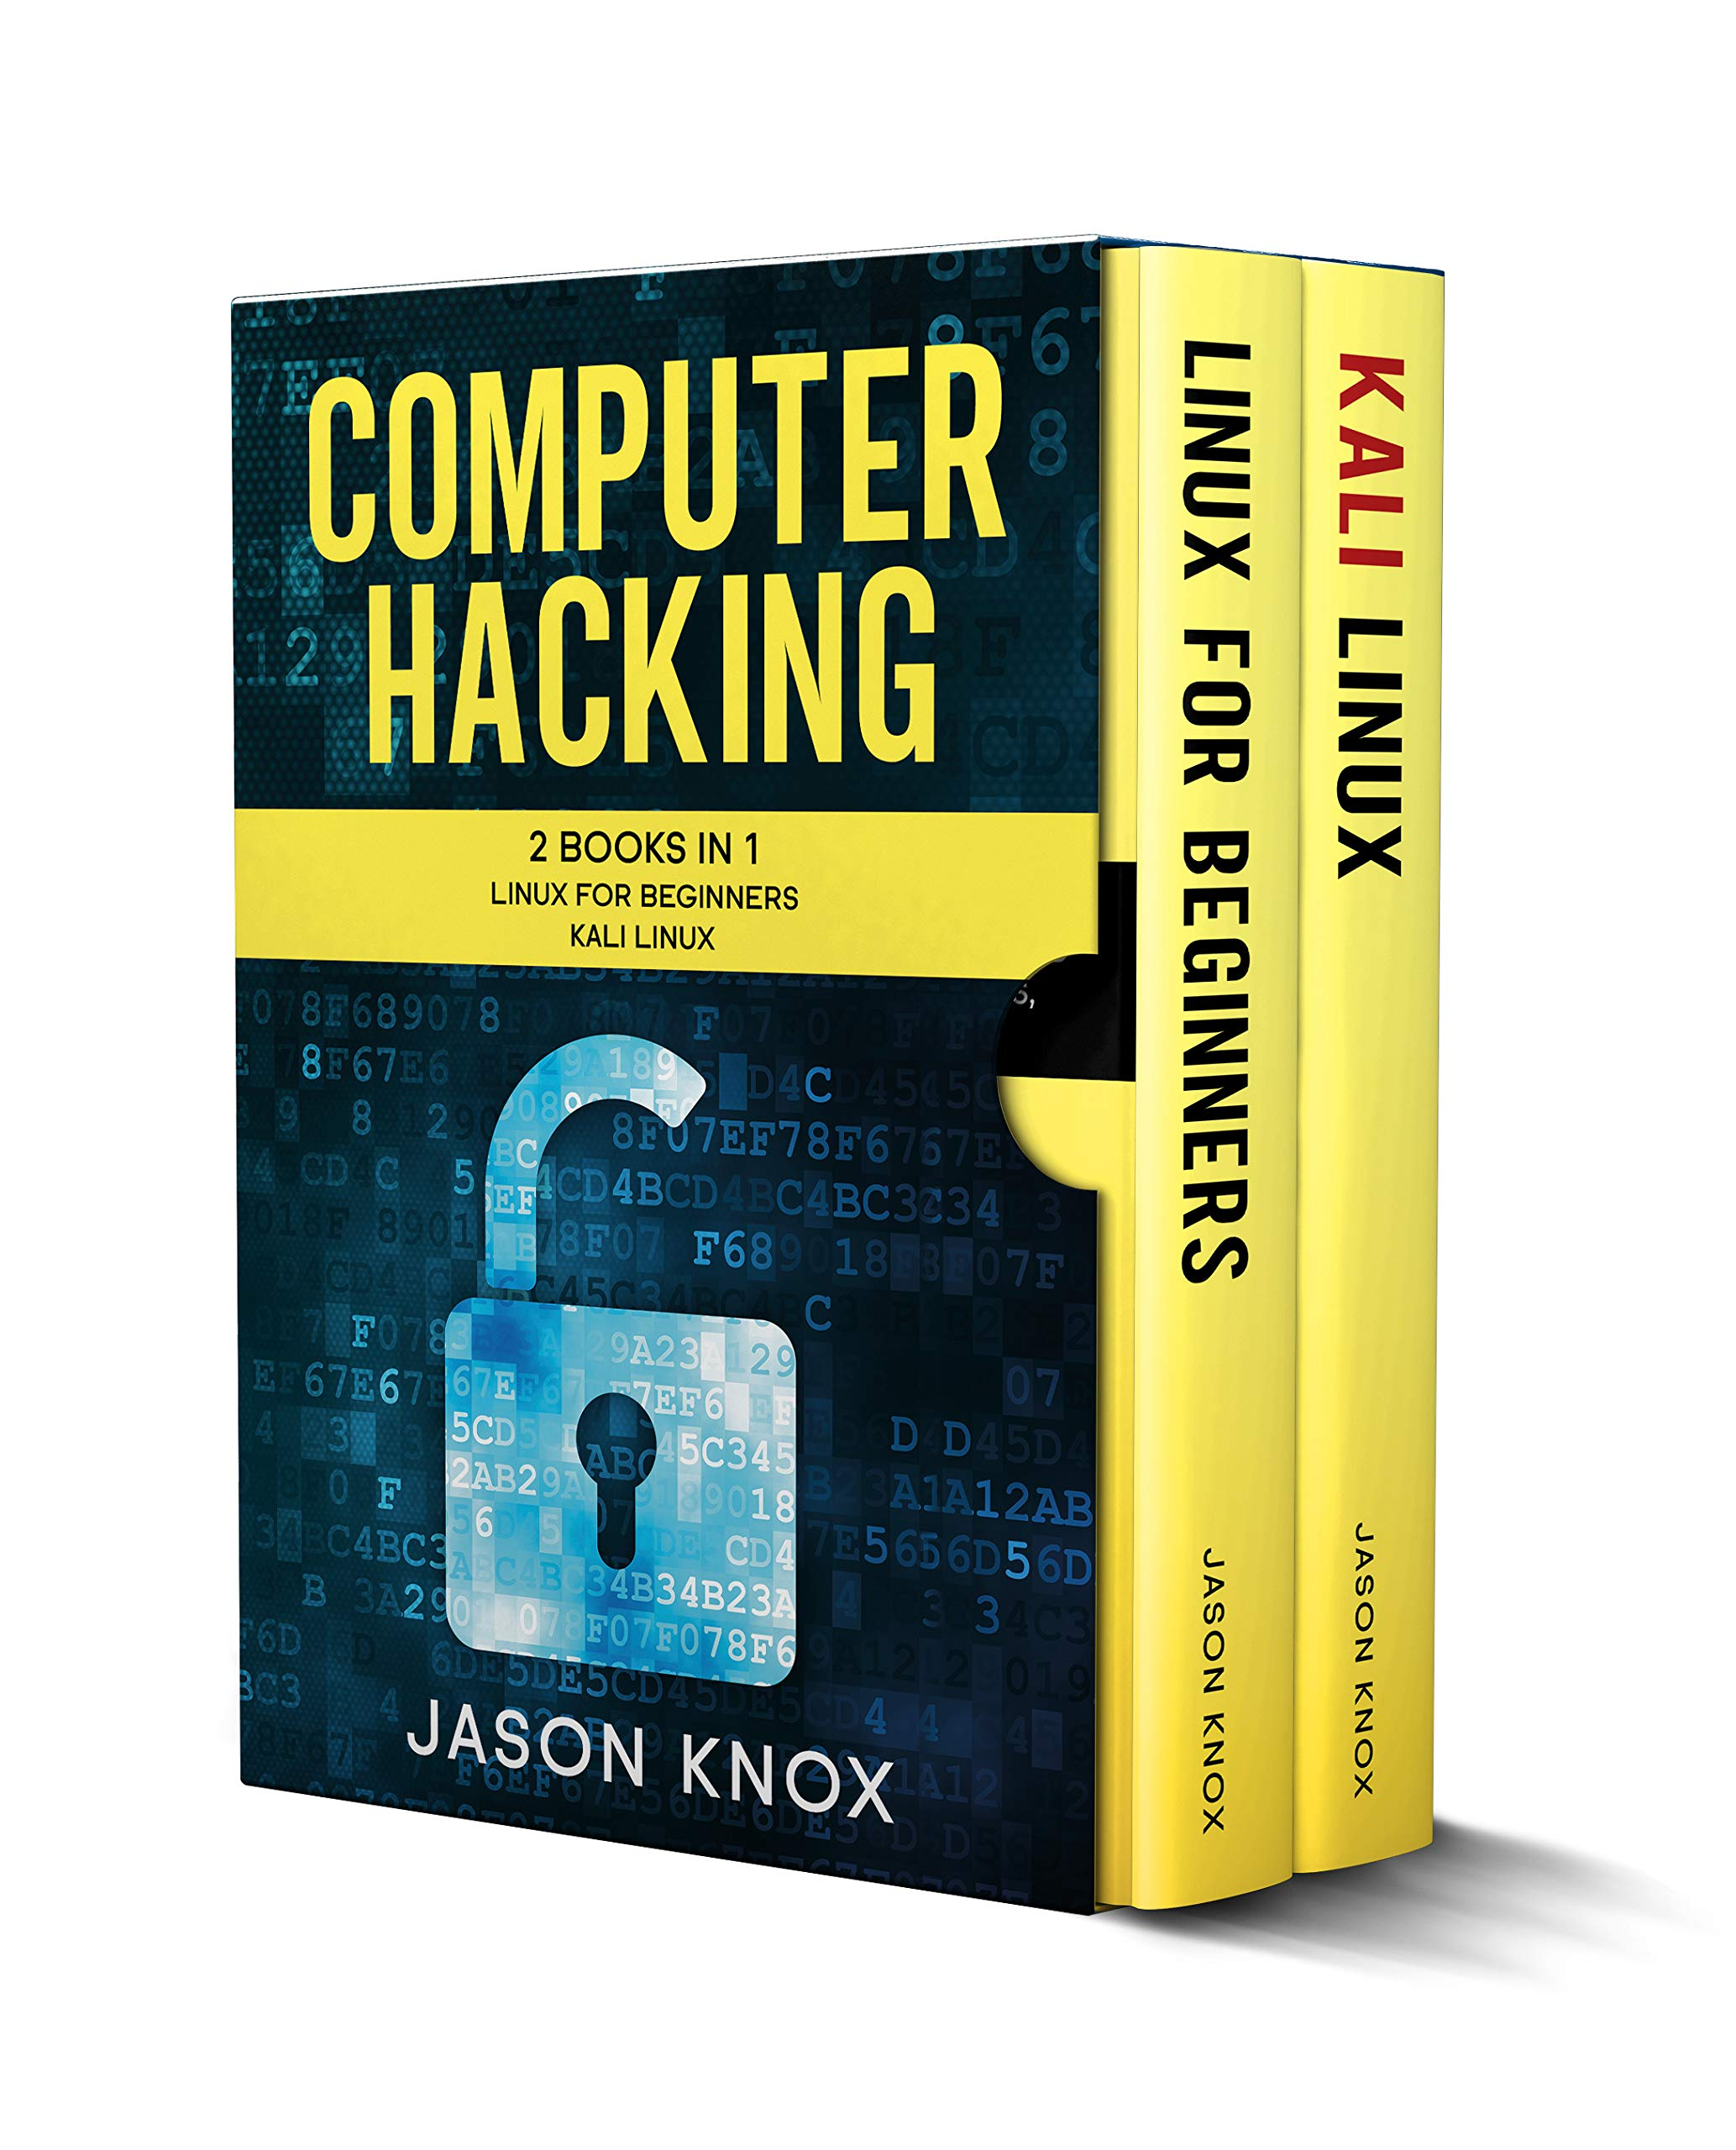 Image OfComputer Hacking: 2 Books In 1: Linux For Beginners + Kali Linux (English Edition)